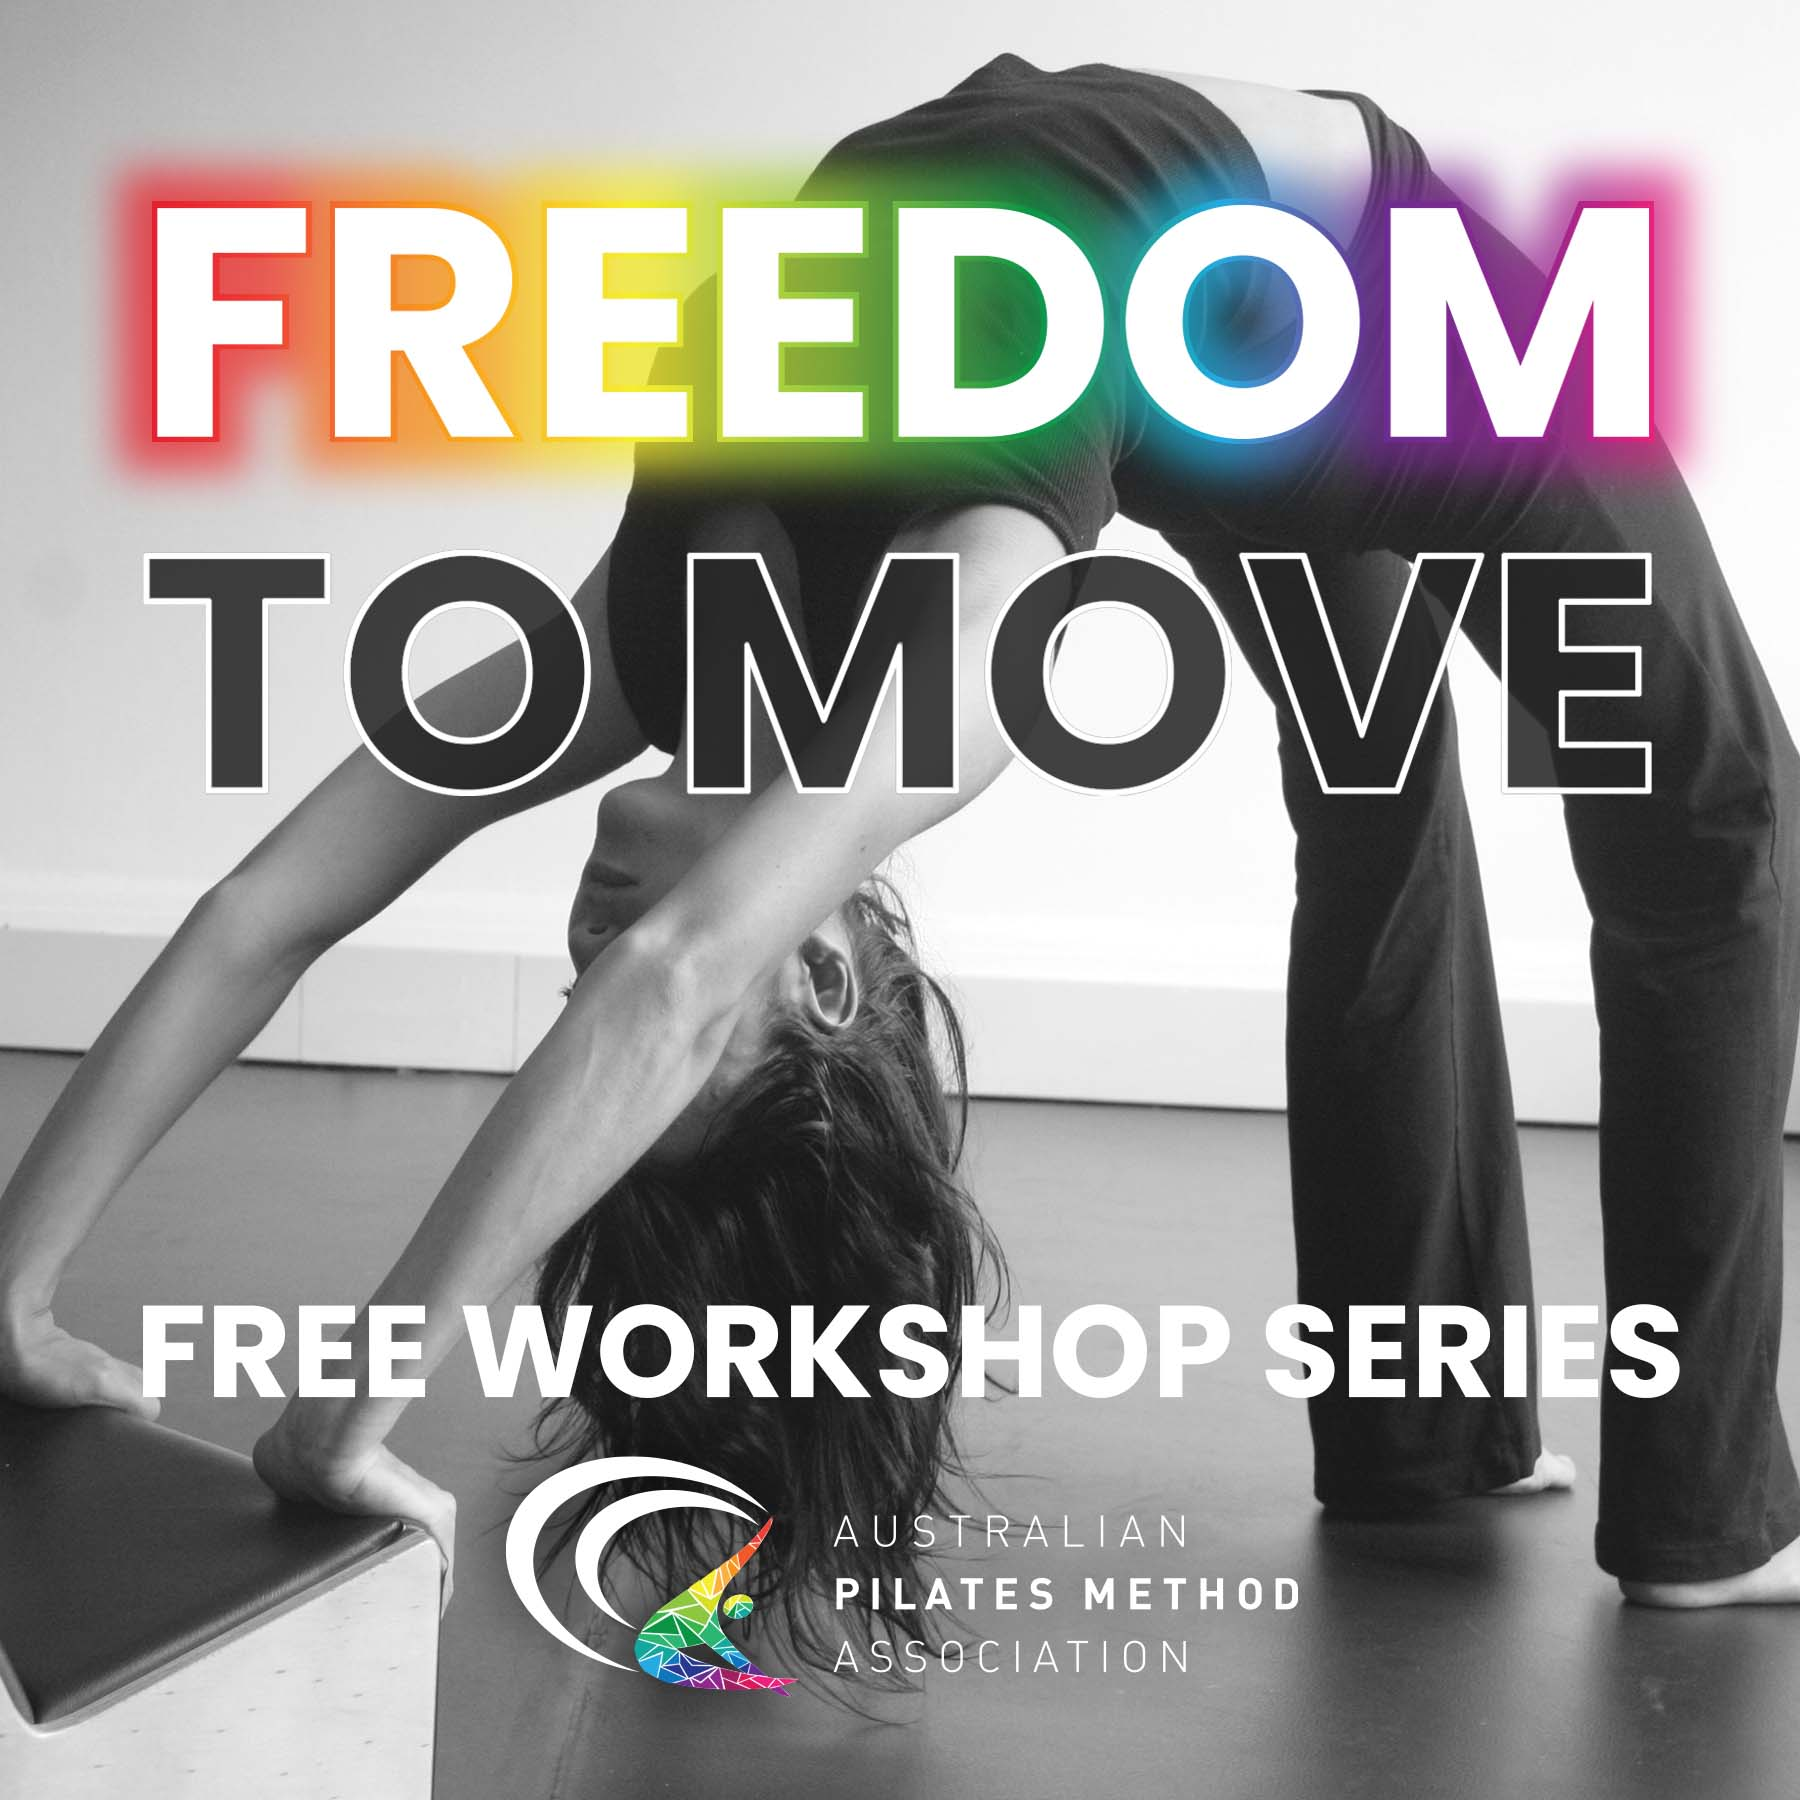 FREEDOM TO MOVE